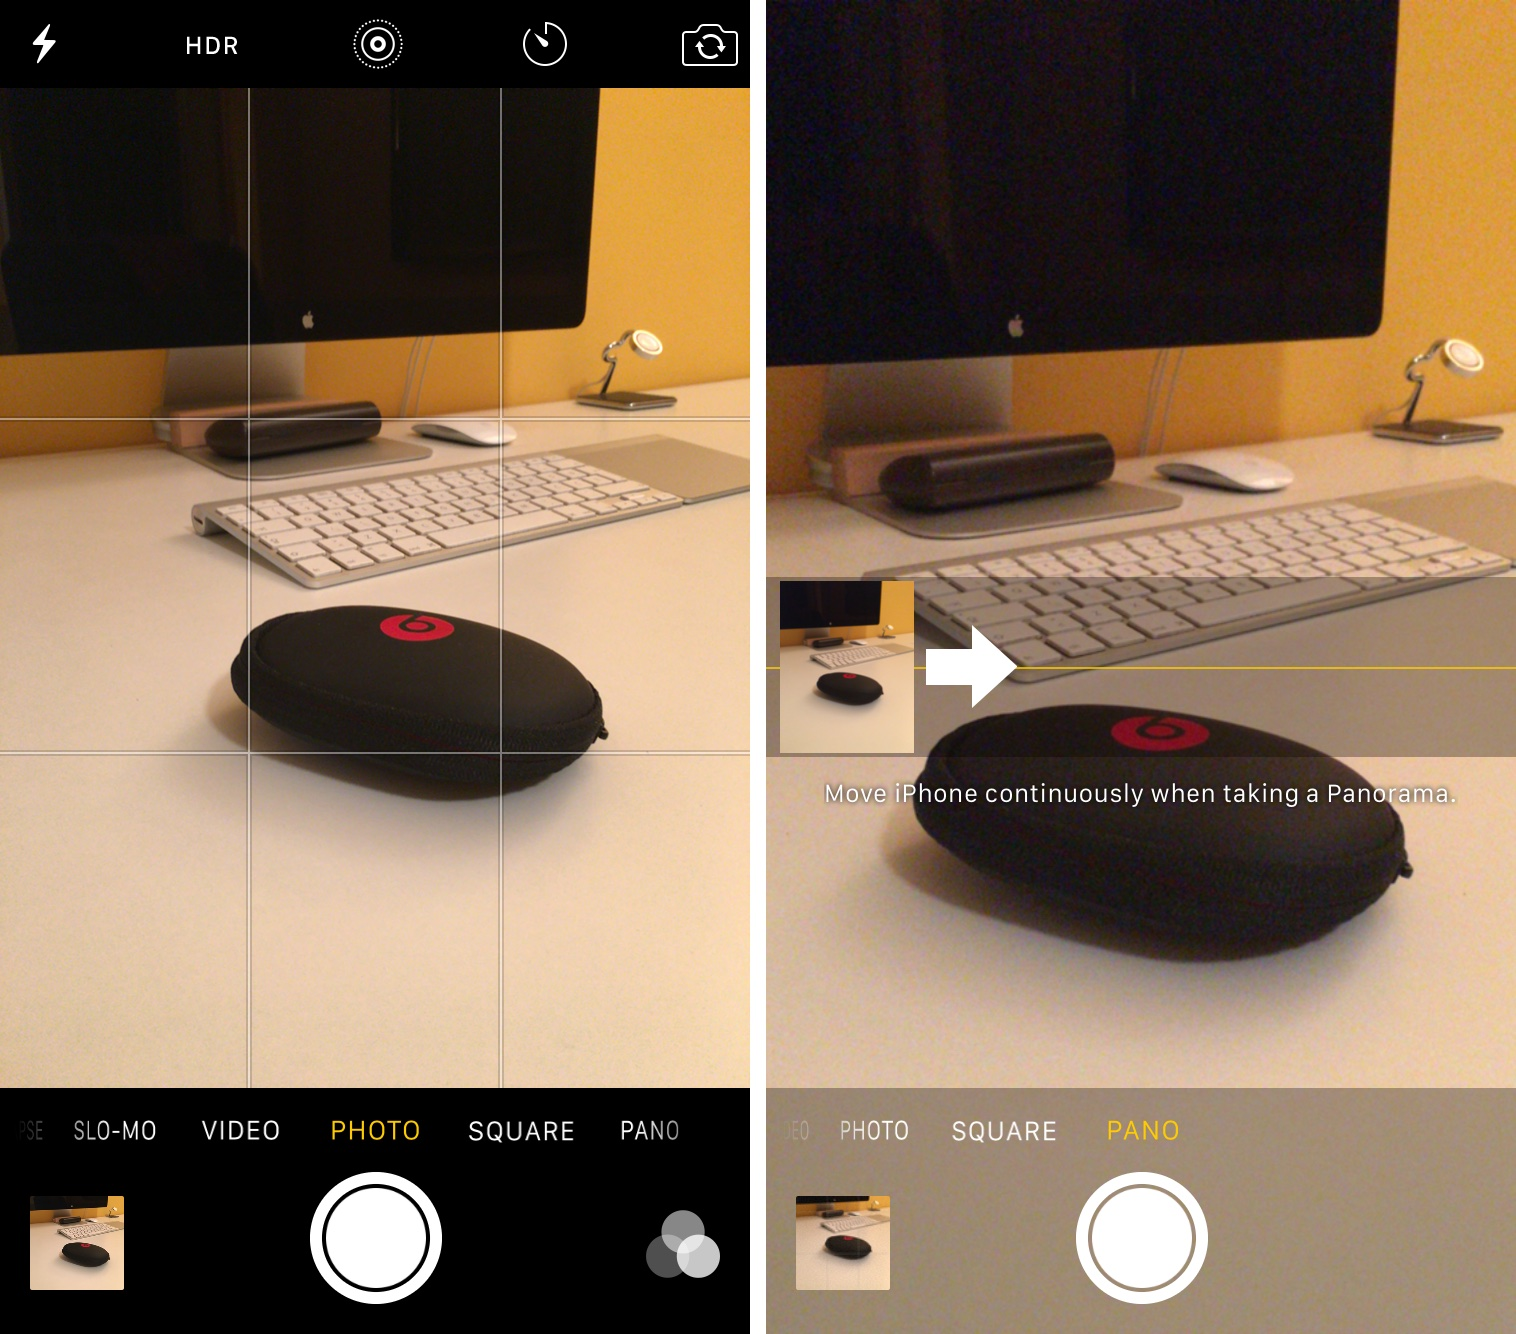 How to switch direction Panorama mode iPhone screenshot 001